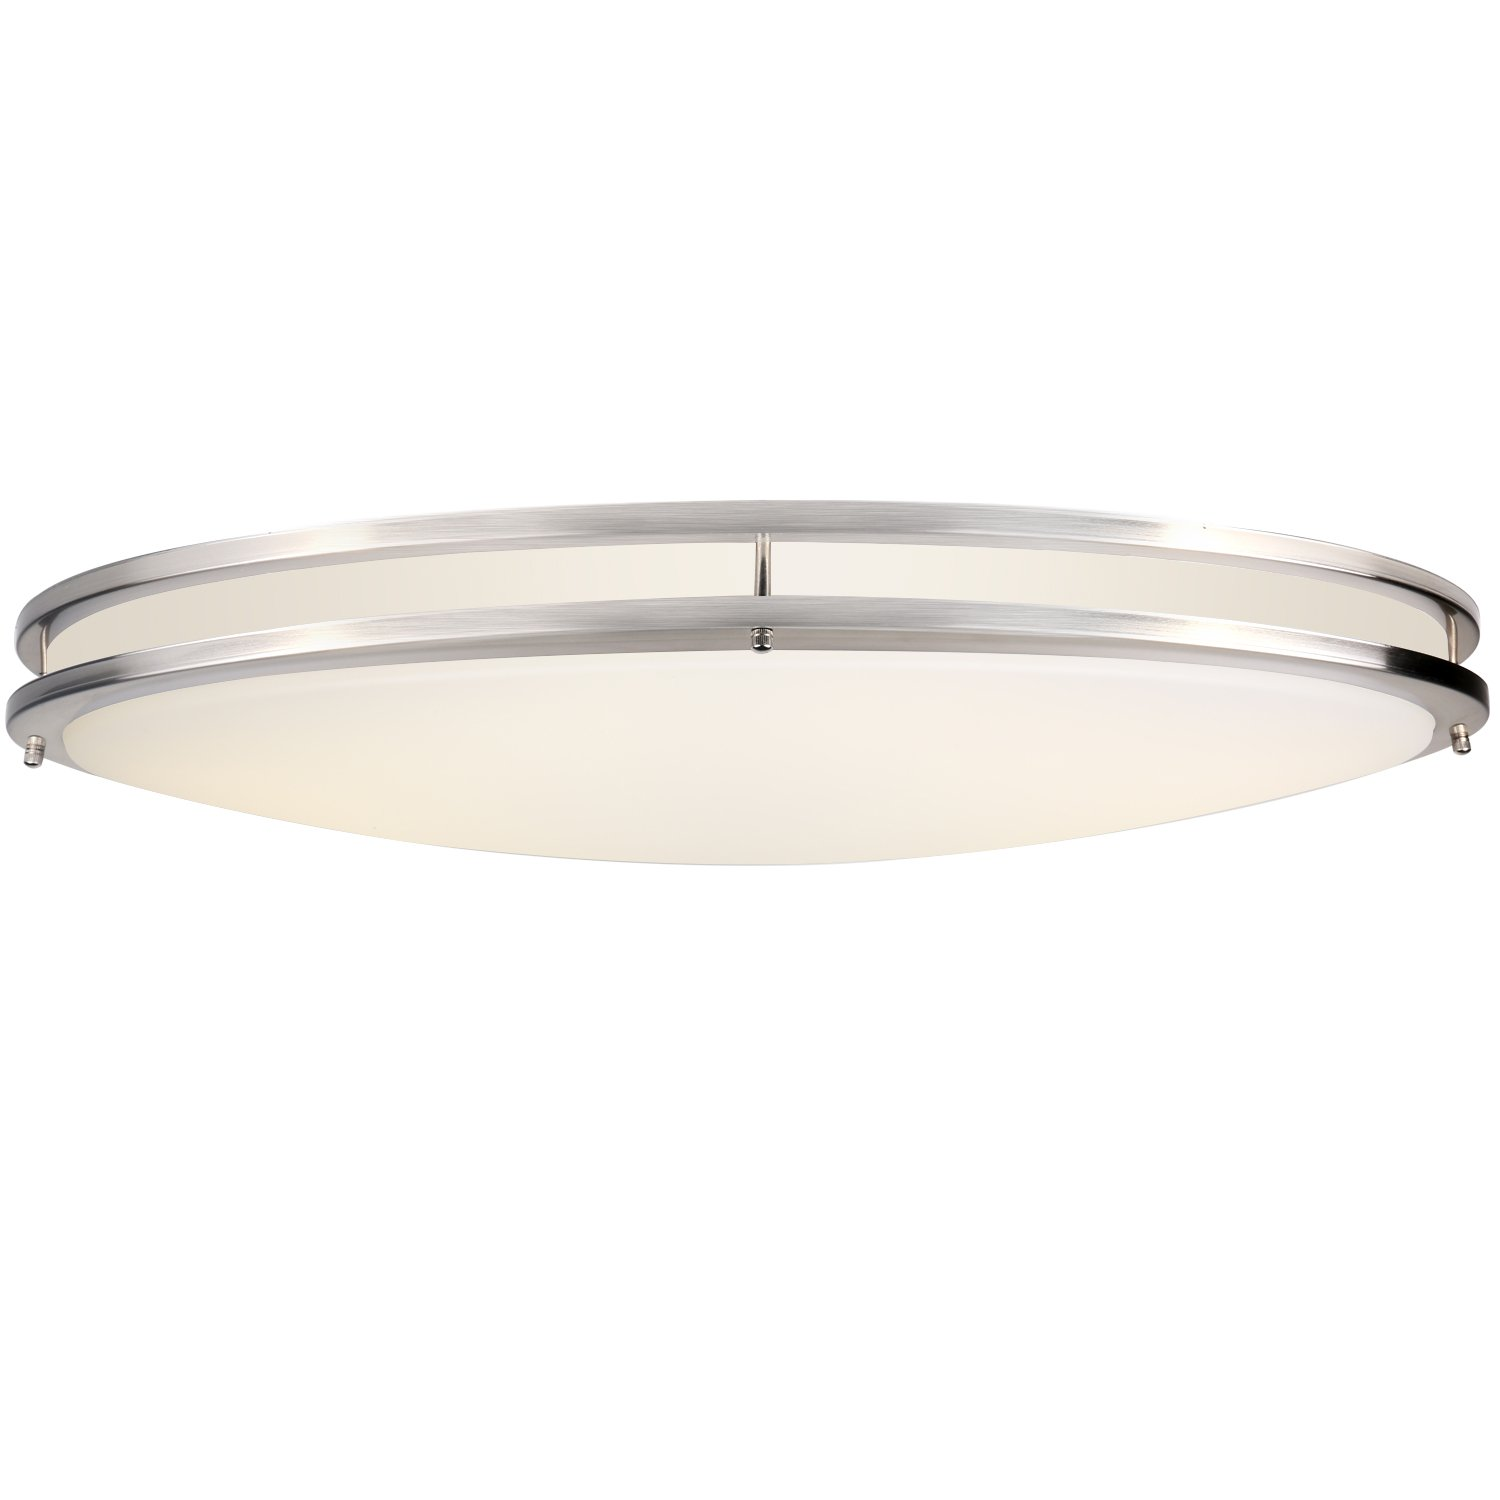 Hykolity 32'' Dimmable LED Flushmount Ceiling Downlight Brushed Nickel Oval Lamp Fixture 48W [300W Equivalent] 3360Lm 4000K for Bedroom, Restroom, Walk In Closet, Washroom, Living Room